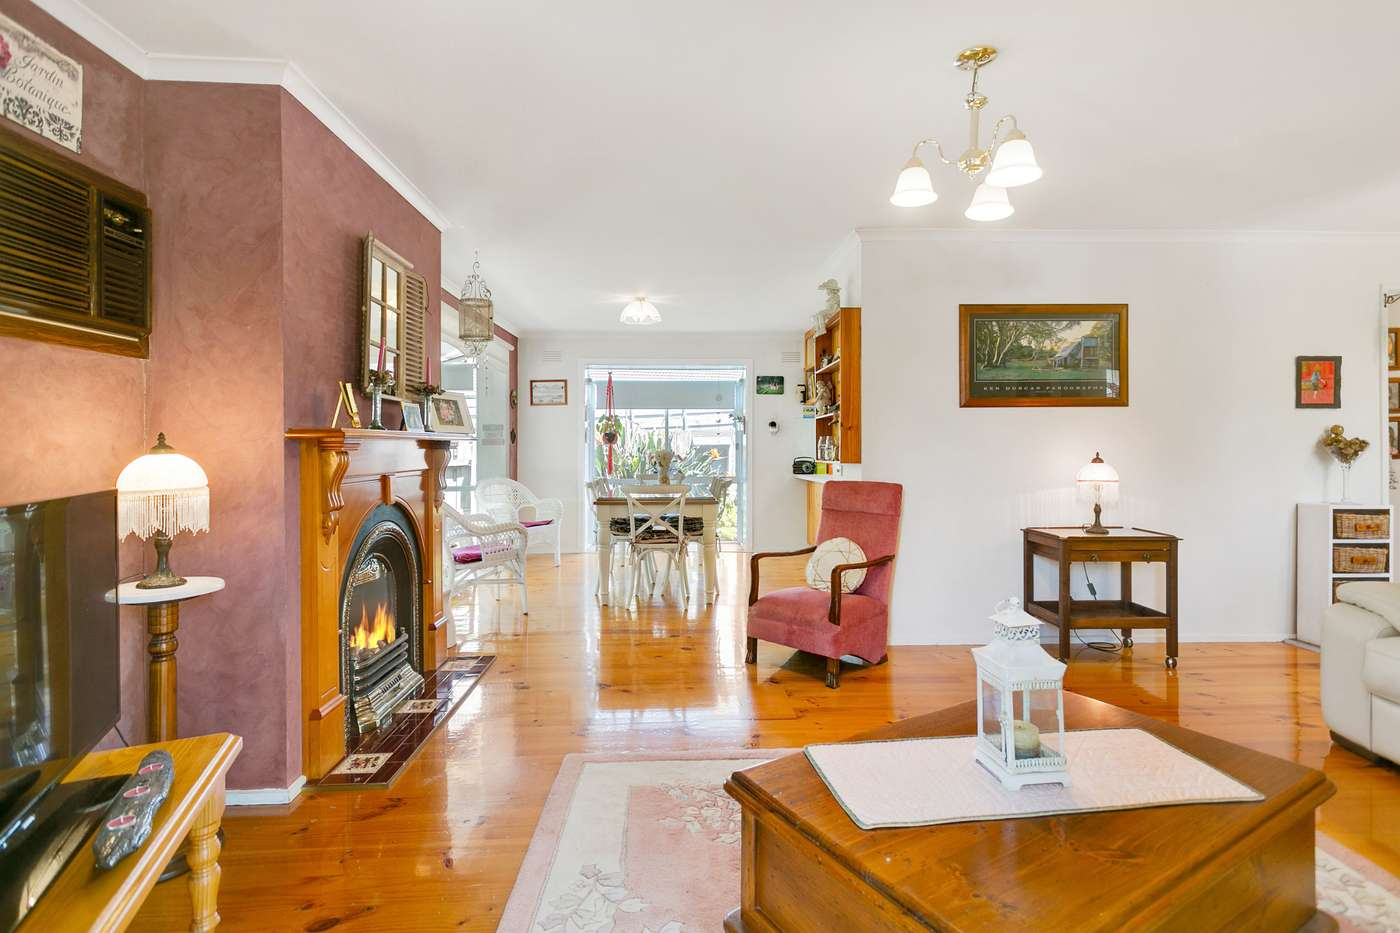 Main view of Homely house listing, 107 Pearcedale Road, Pearcedale, VIC 3912